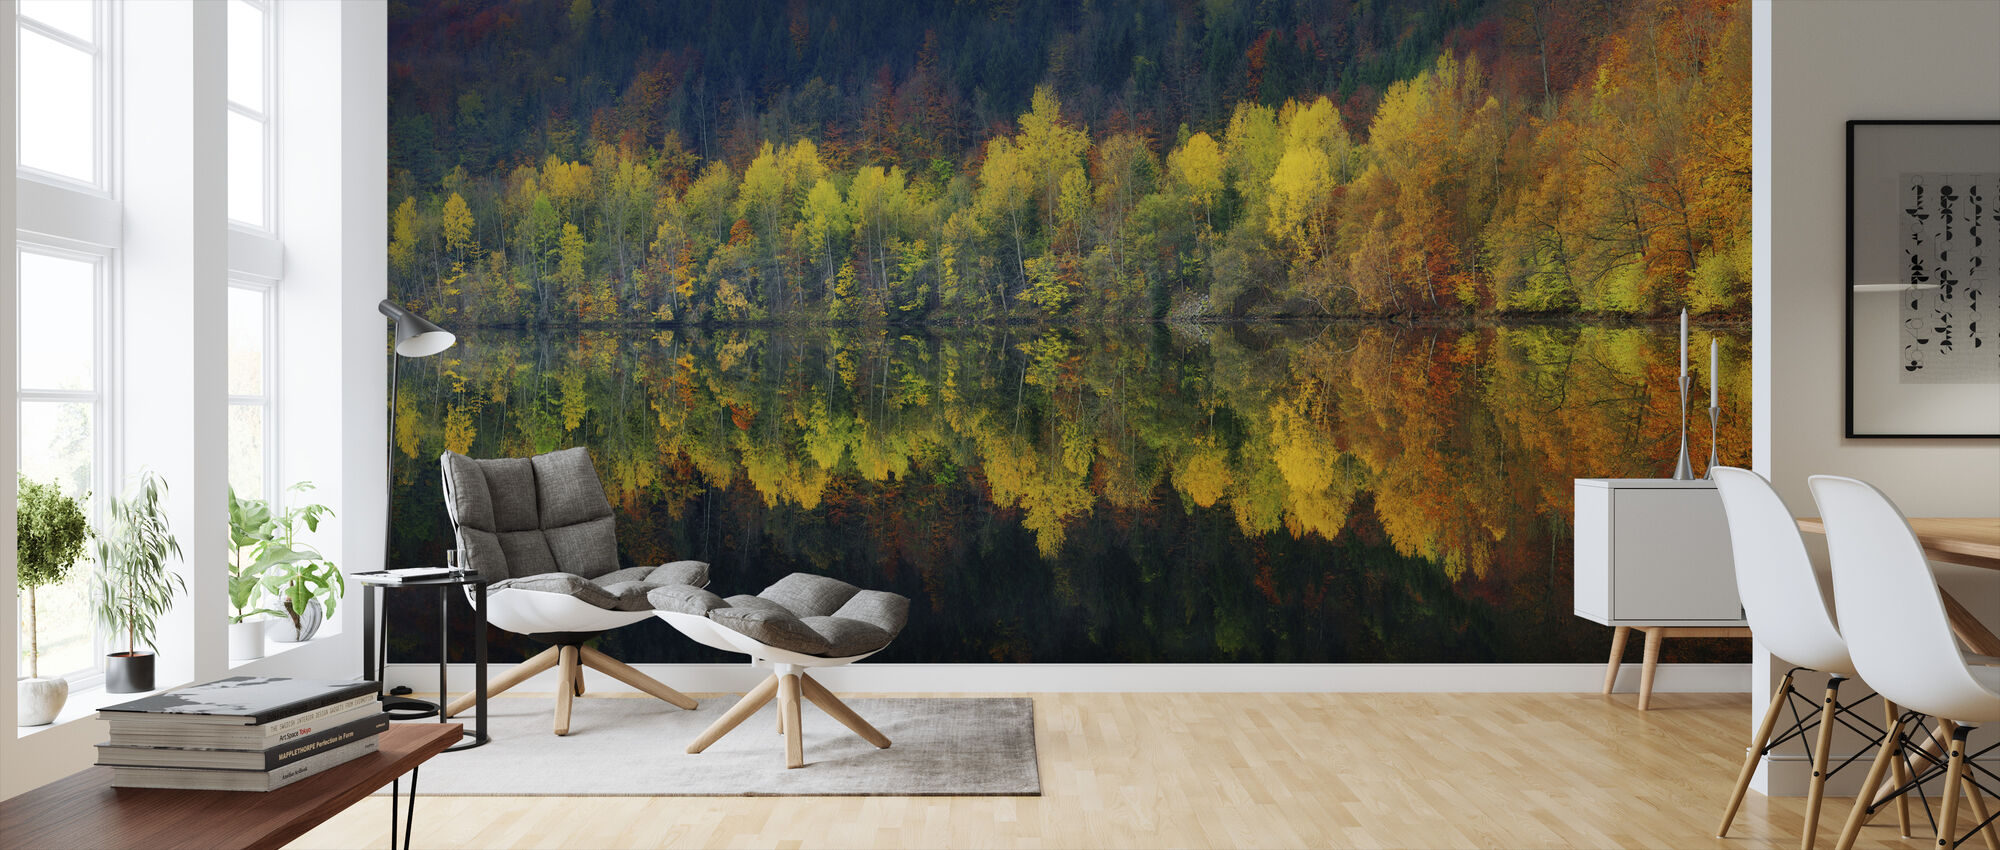 Autumnal Silence - Wallpaper - Living Room